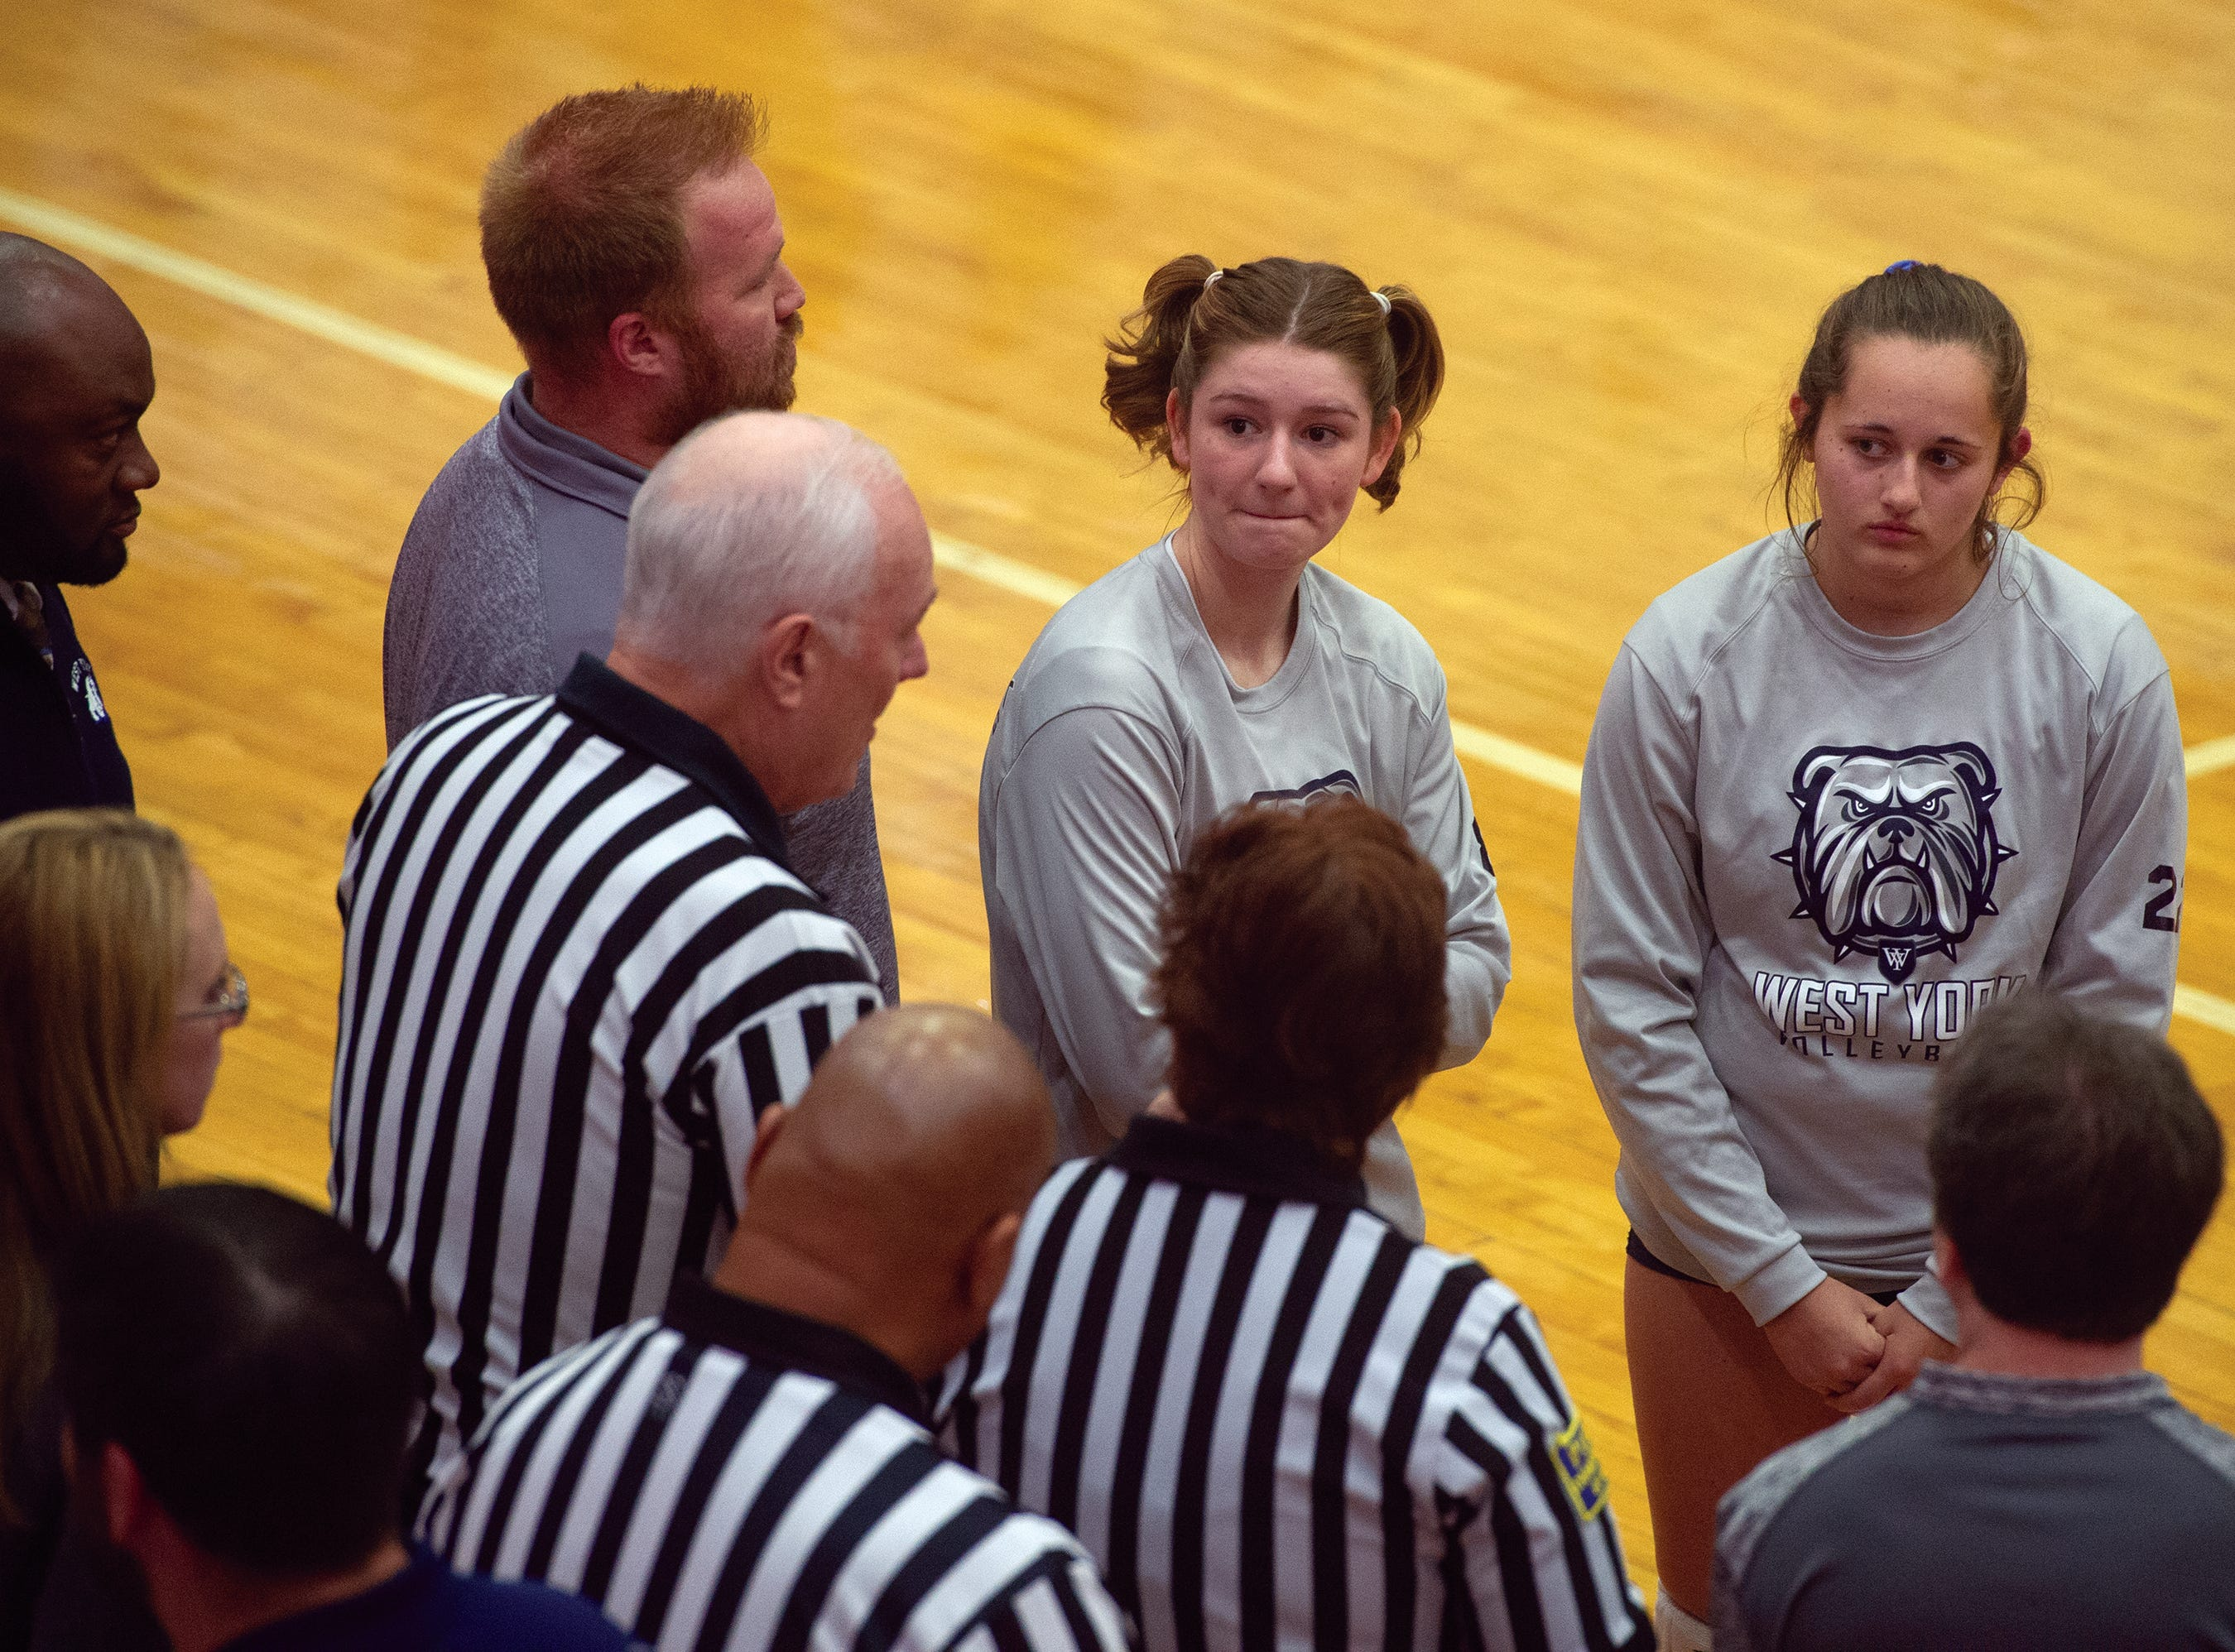 West York's captains listen to the officials before Saturday's PiAA Class 3A girls' volleyball championship at Cumberland Valley High School. The Bulldogs defeated Warren 3-0 for the state title.